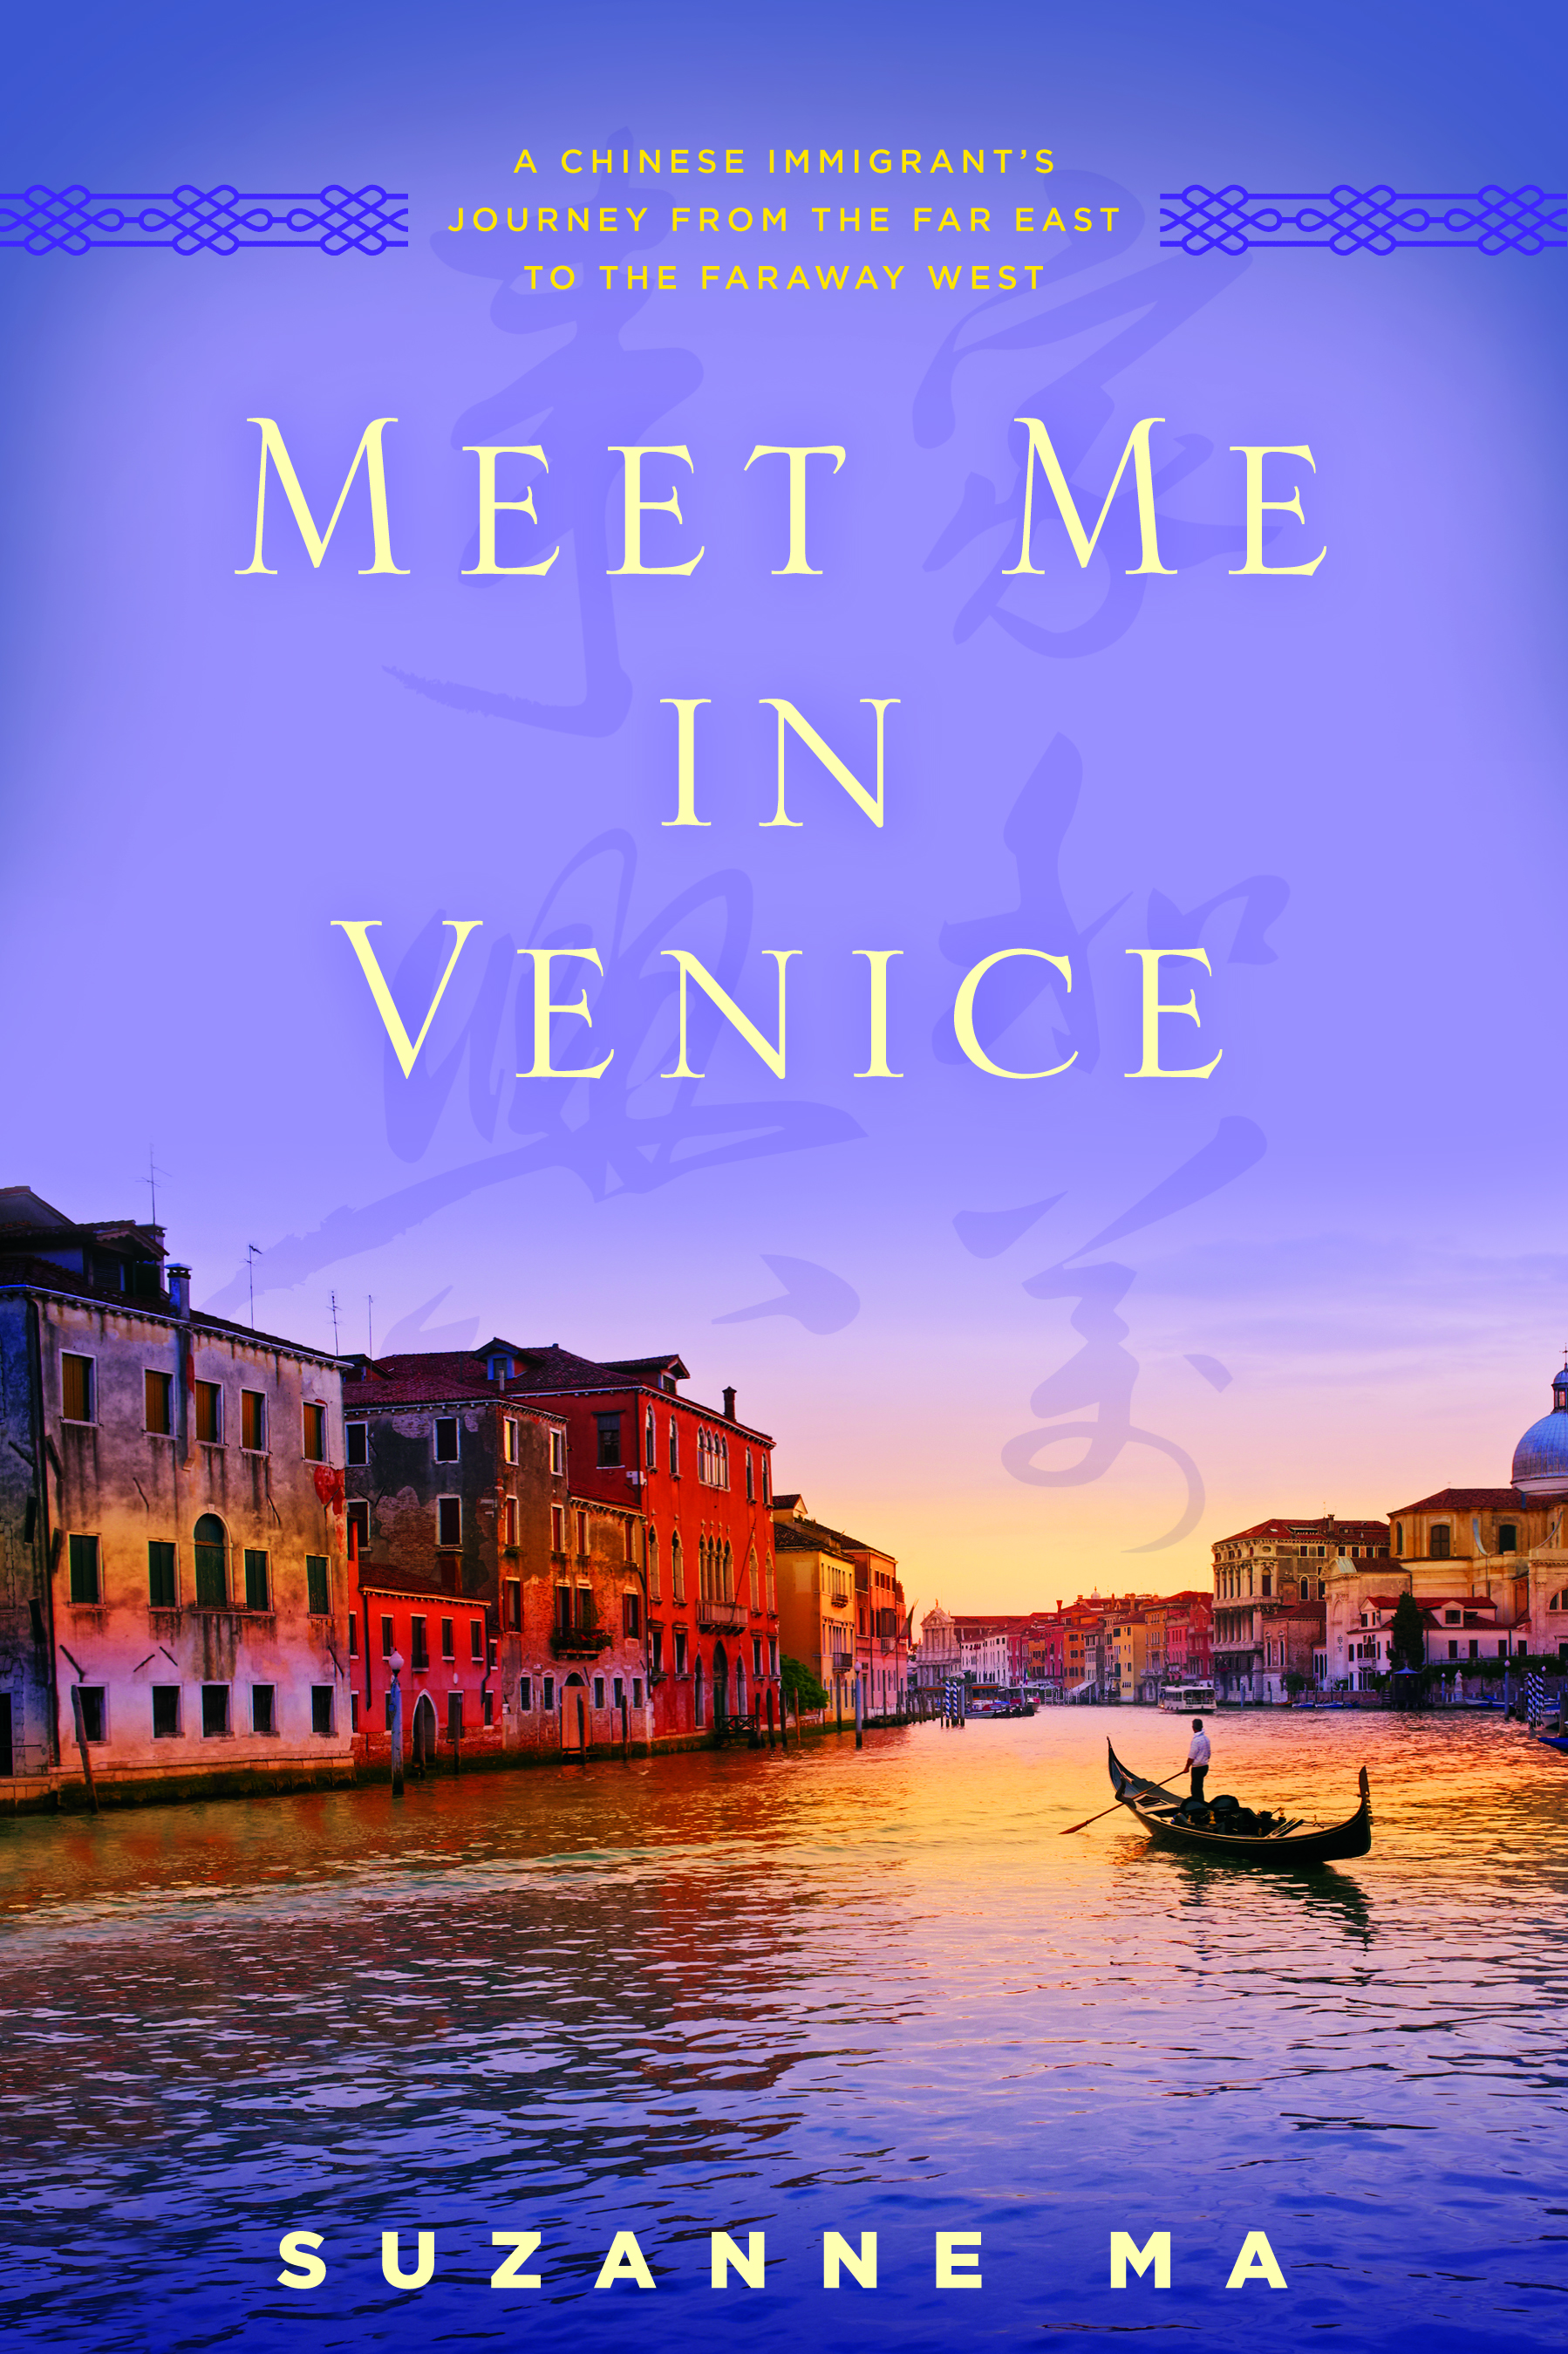 Meet Me In Venice: Book About Chinese Immigration To Europe